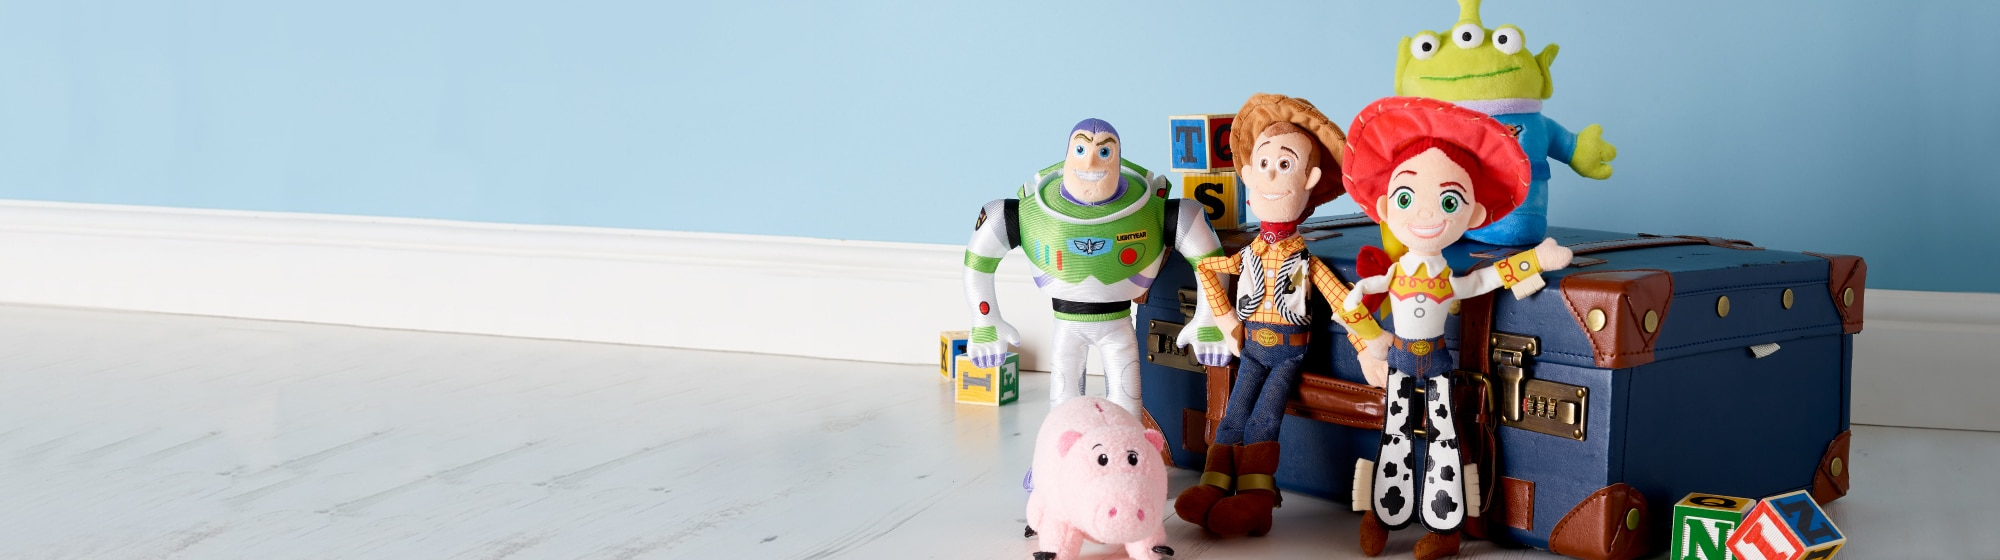 Shop Toy Story products at shopDisney